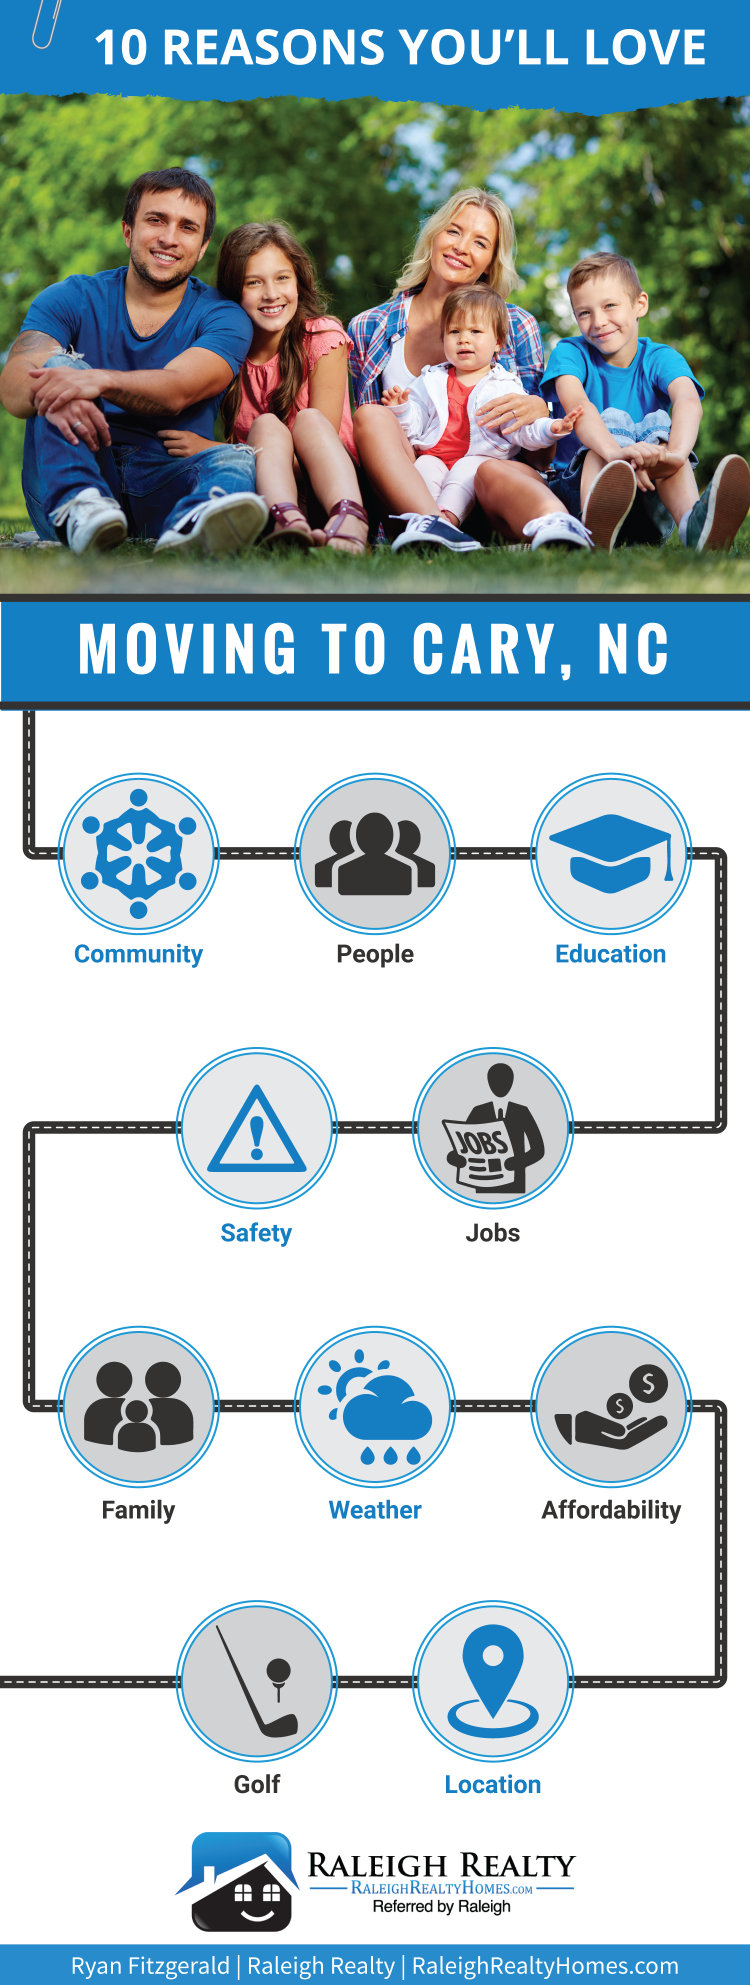 Moving-to-Cary-NC-Infographic